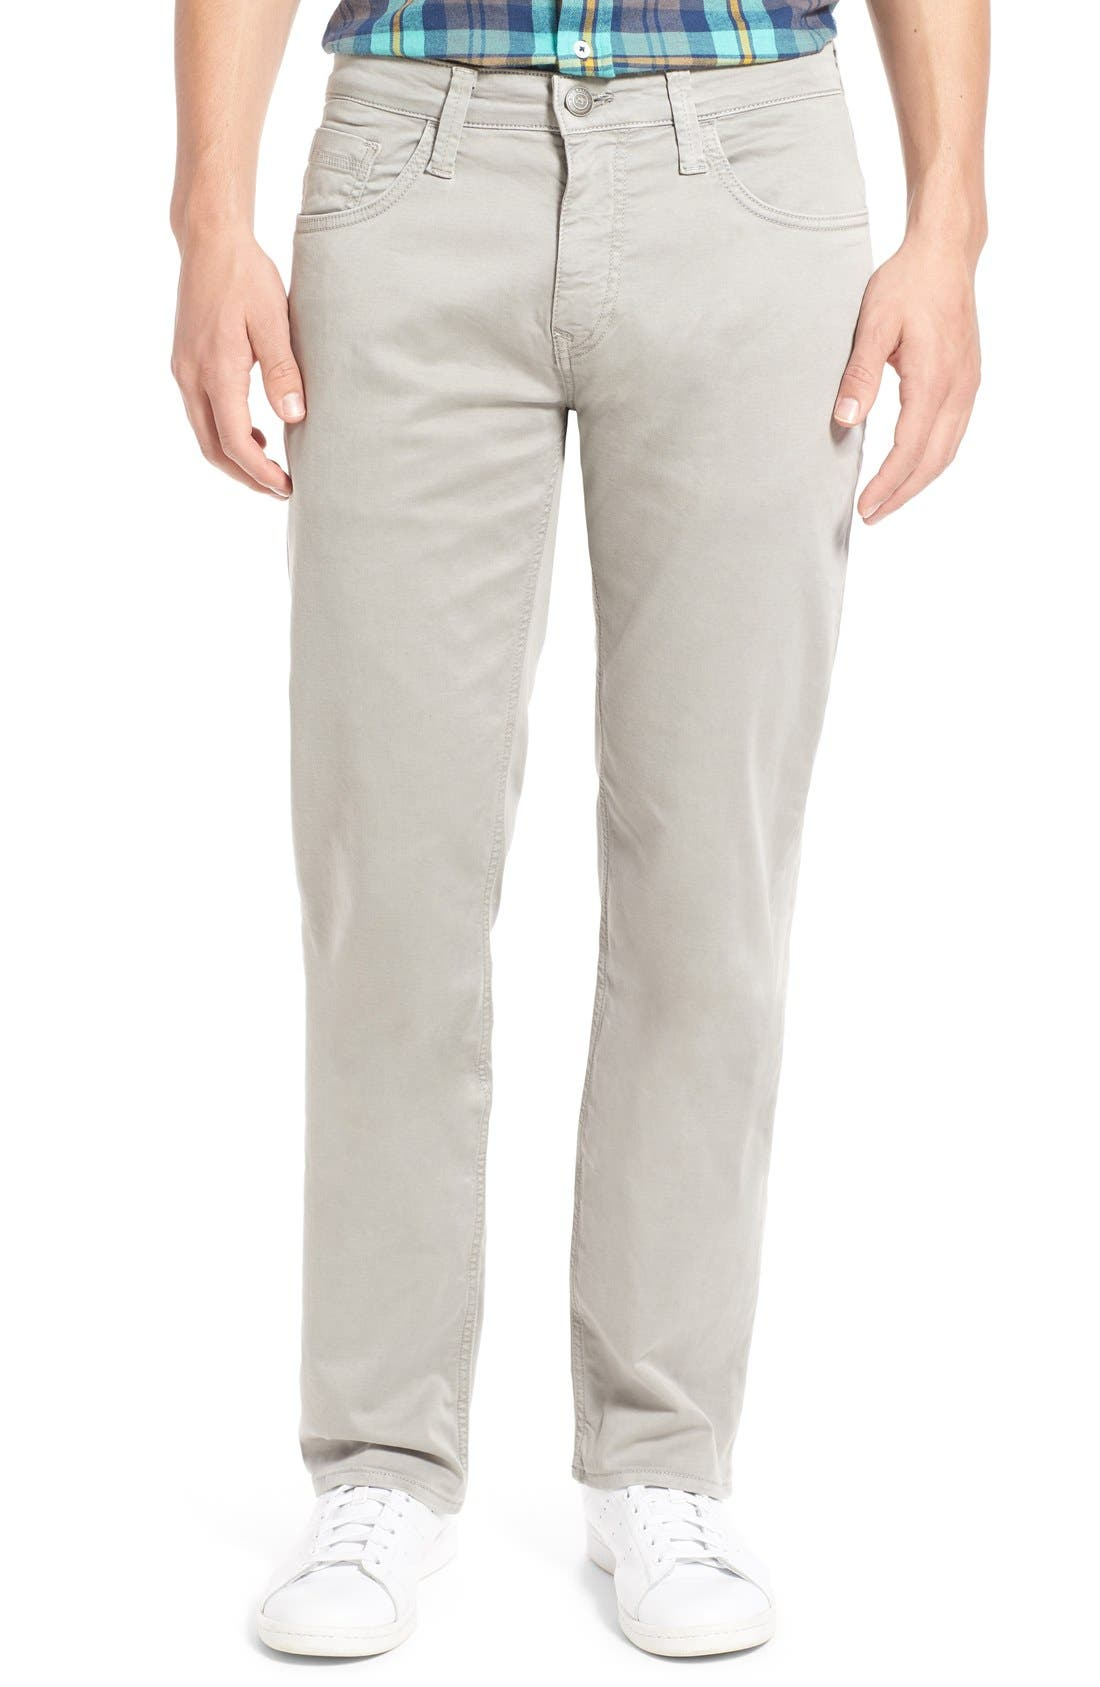 Mavi Jeans 'Zach' Stretch Twill Pants